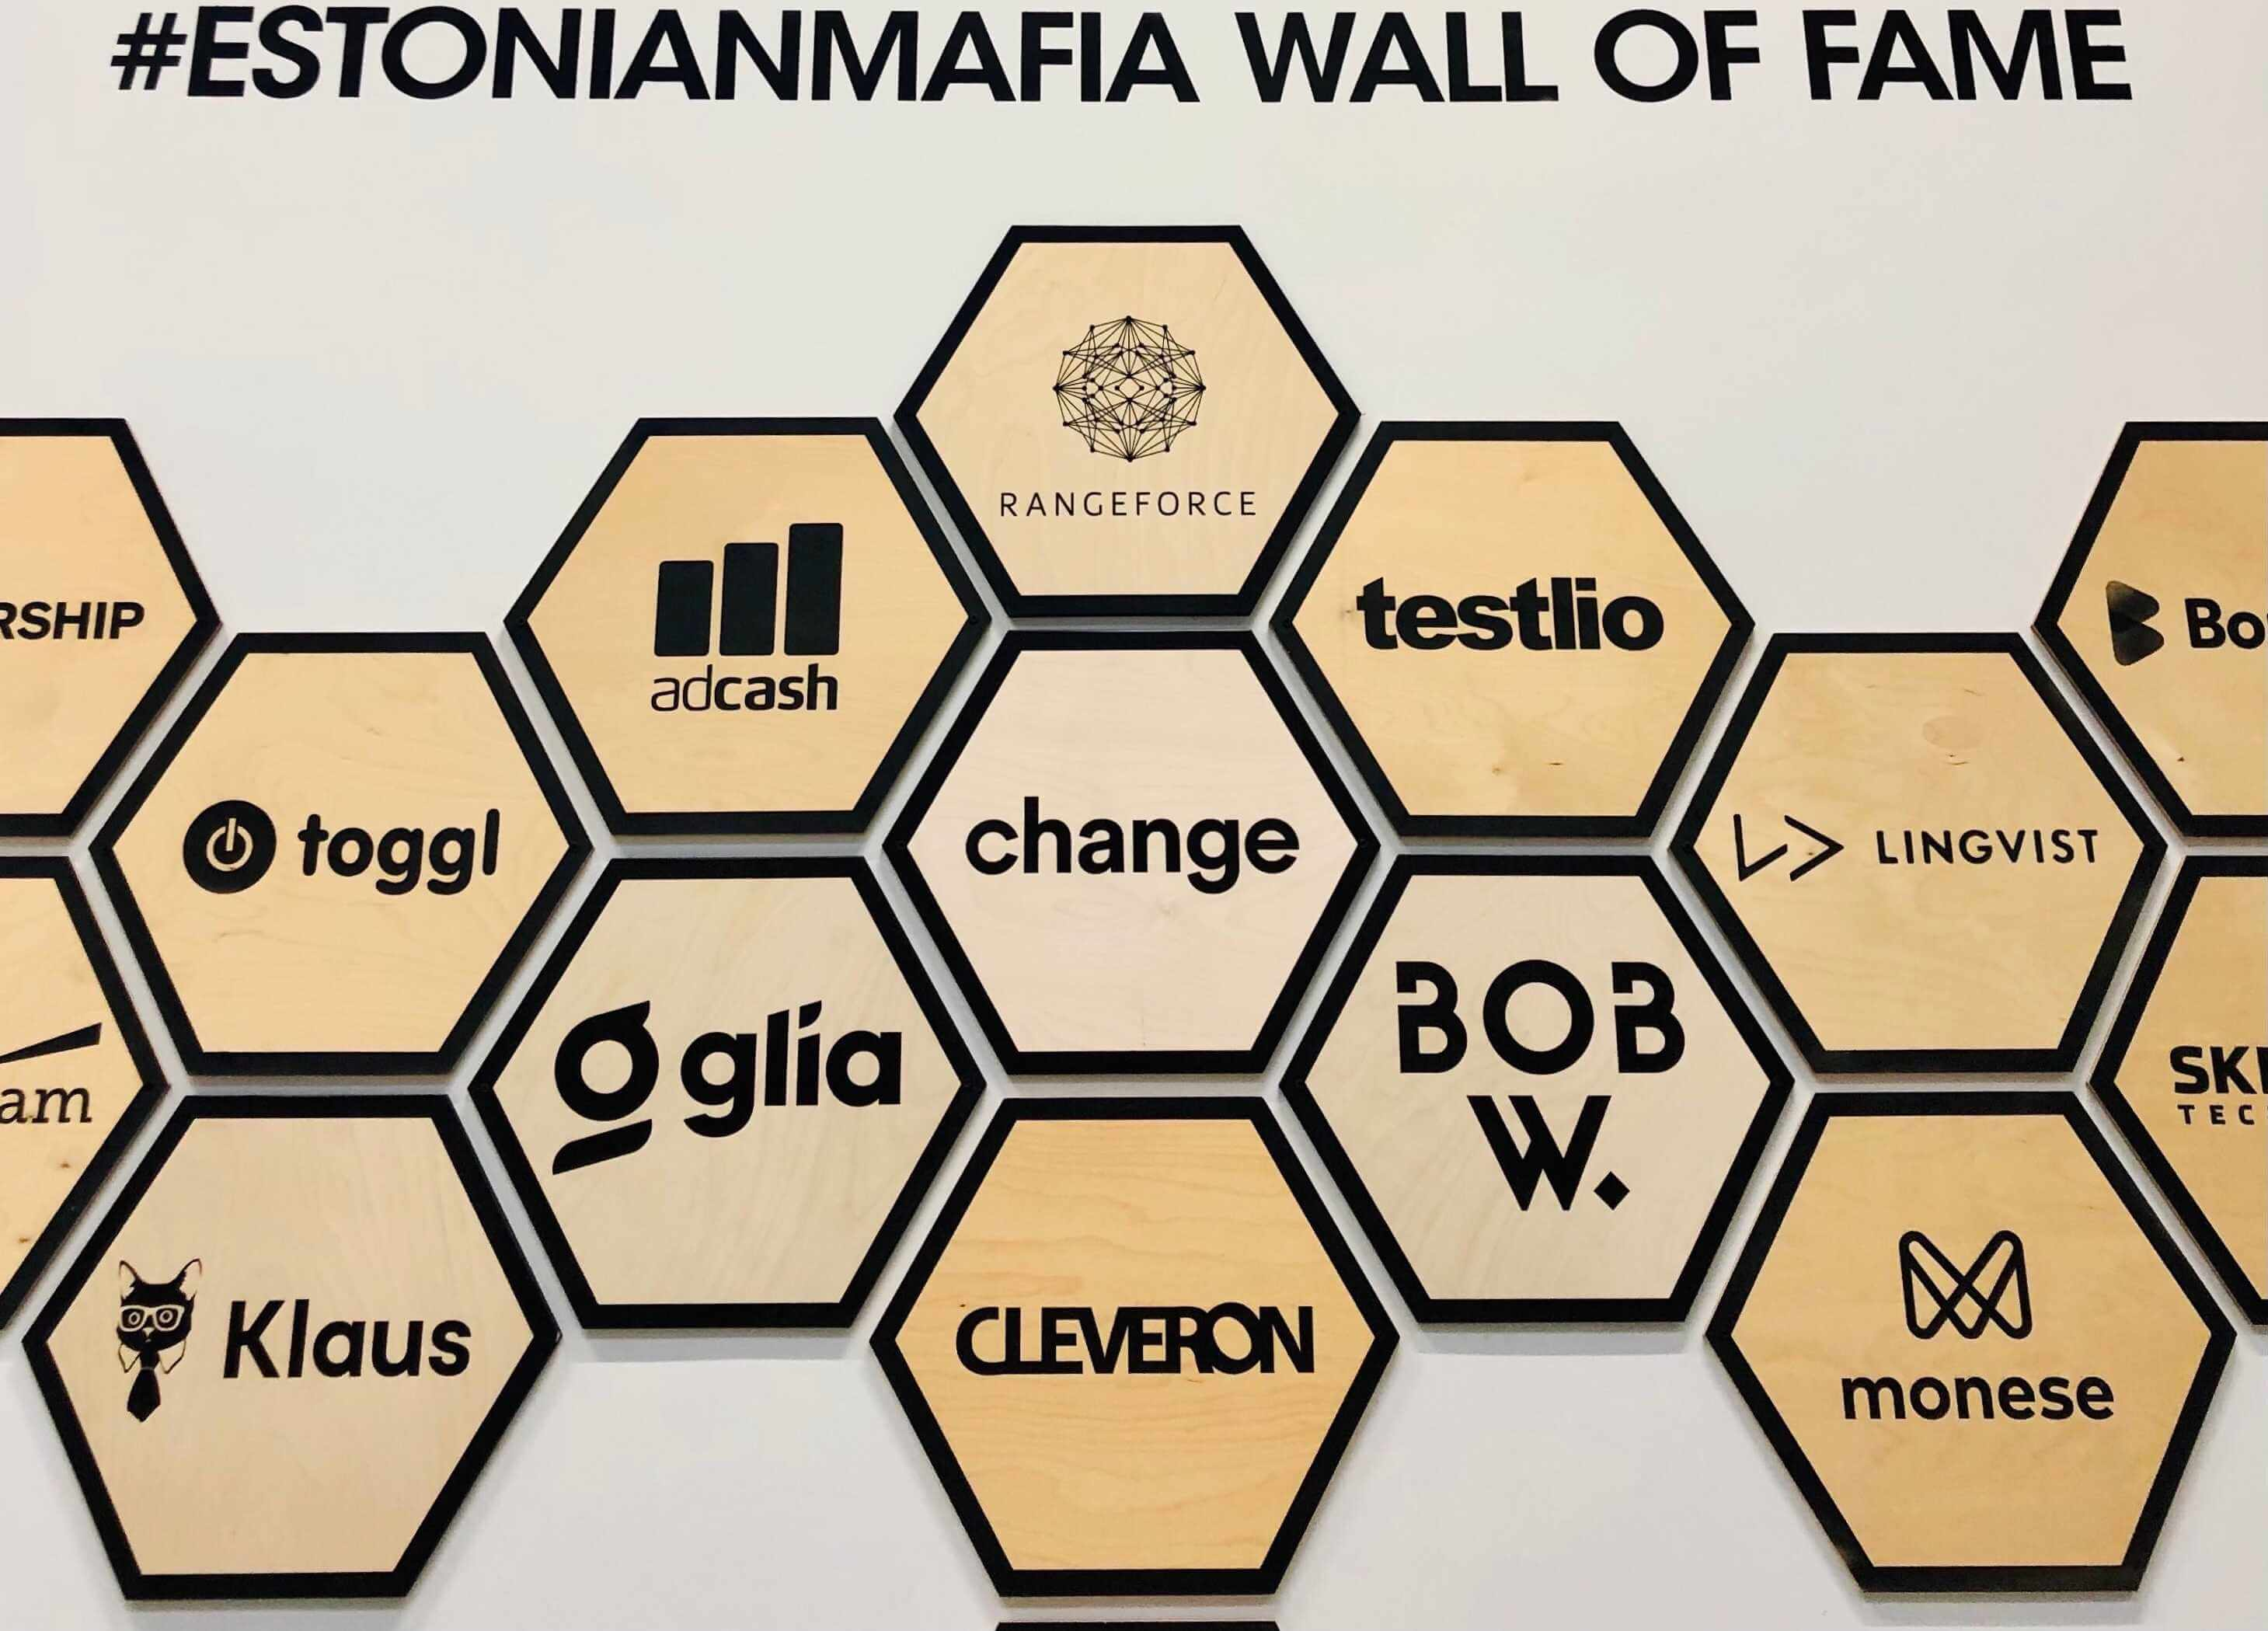 Change is now an official member of Estonia's startup Wall of Fame